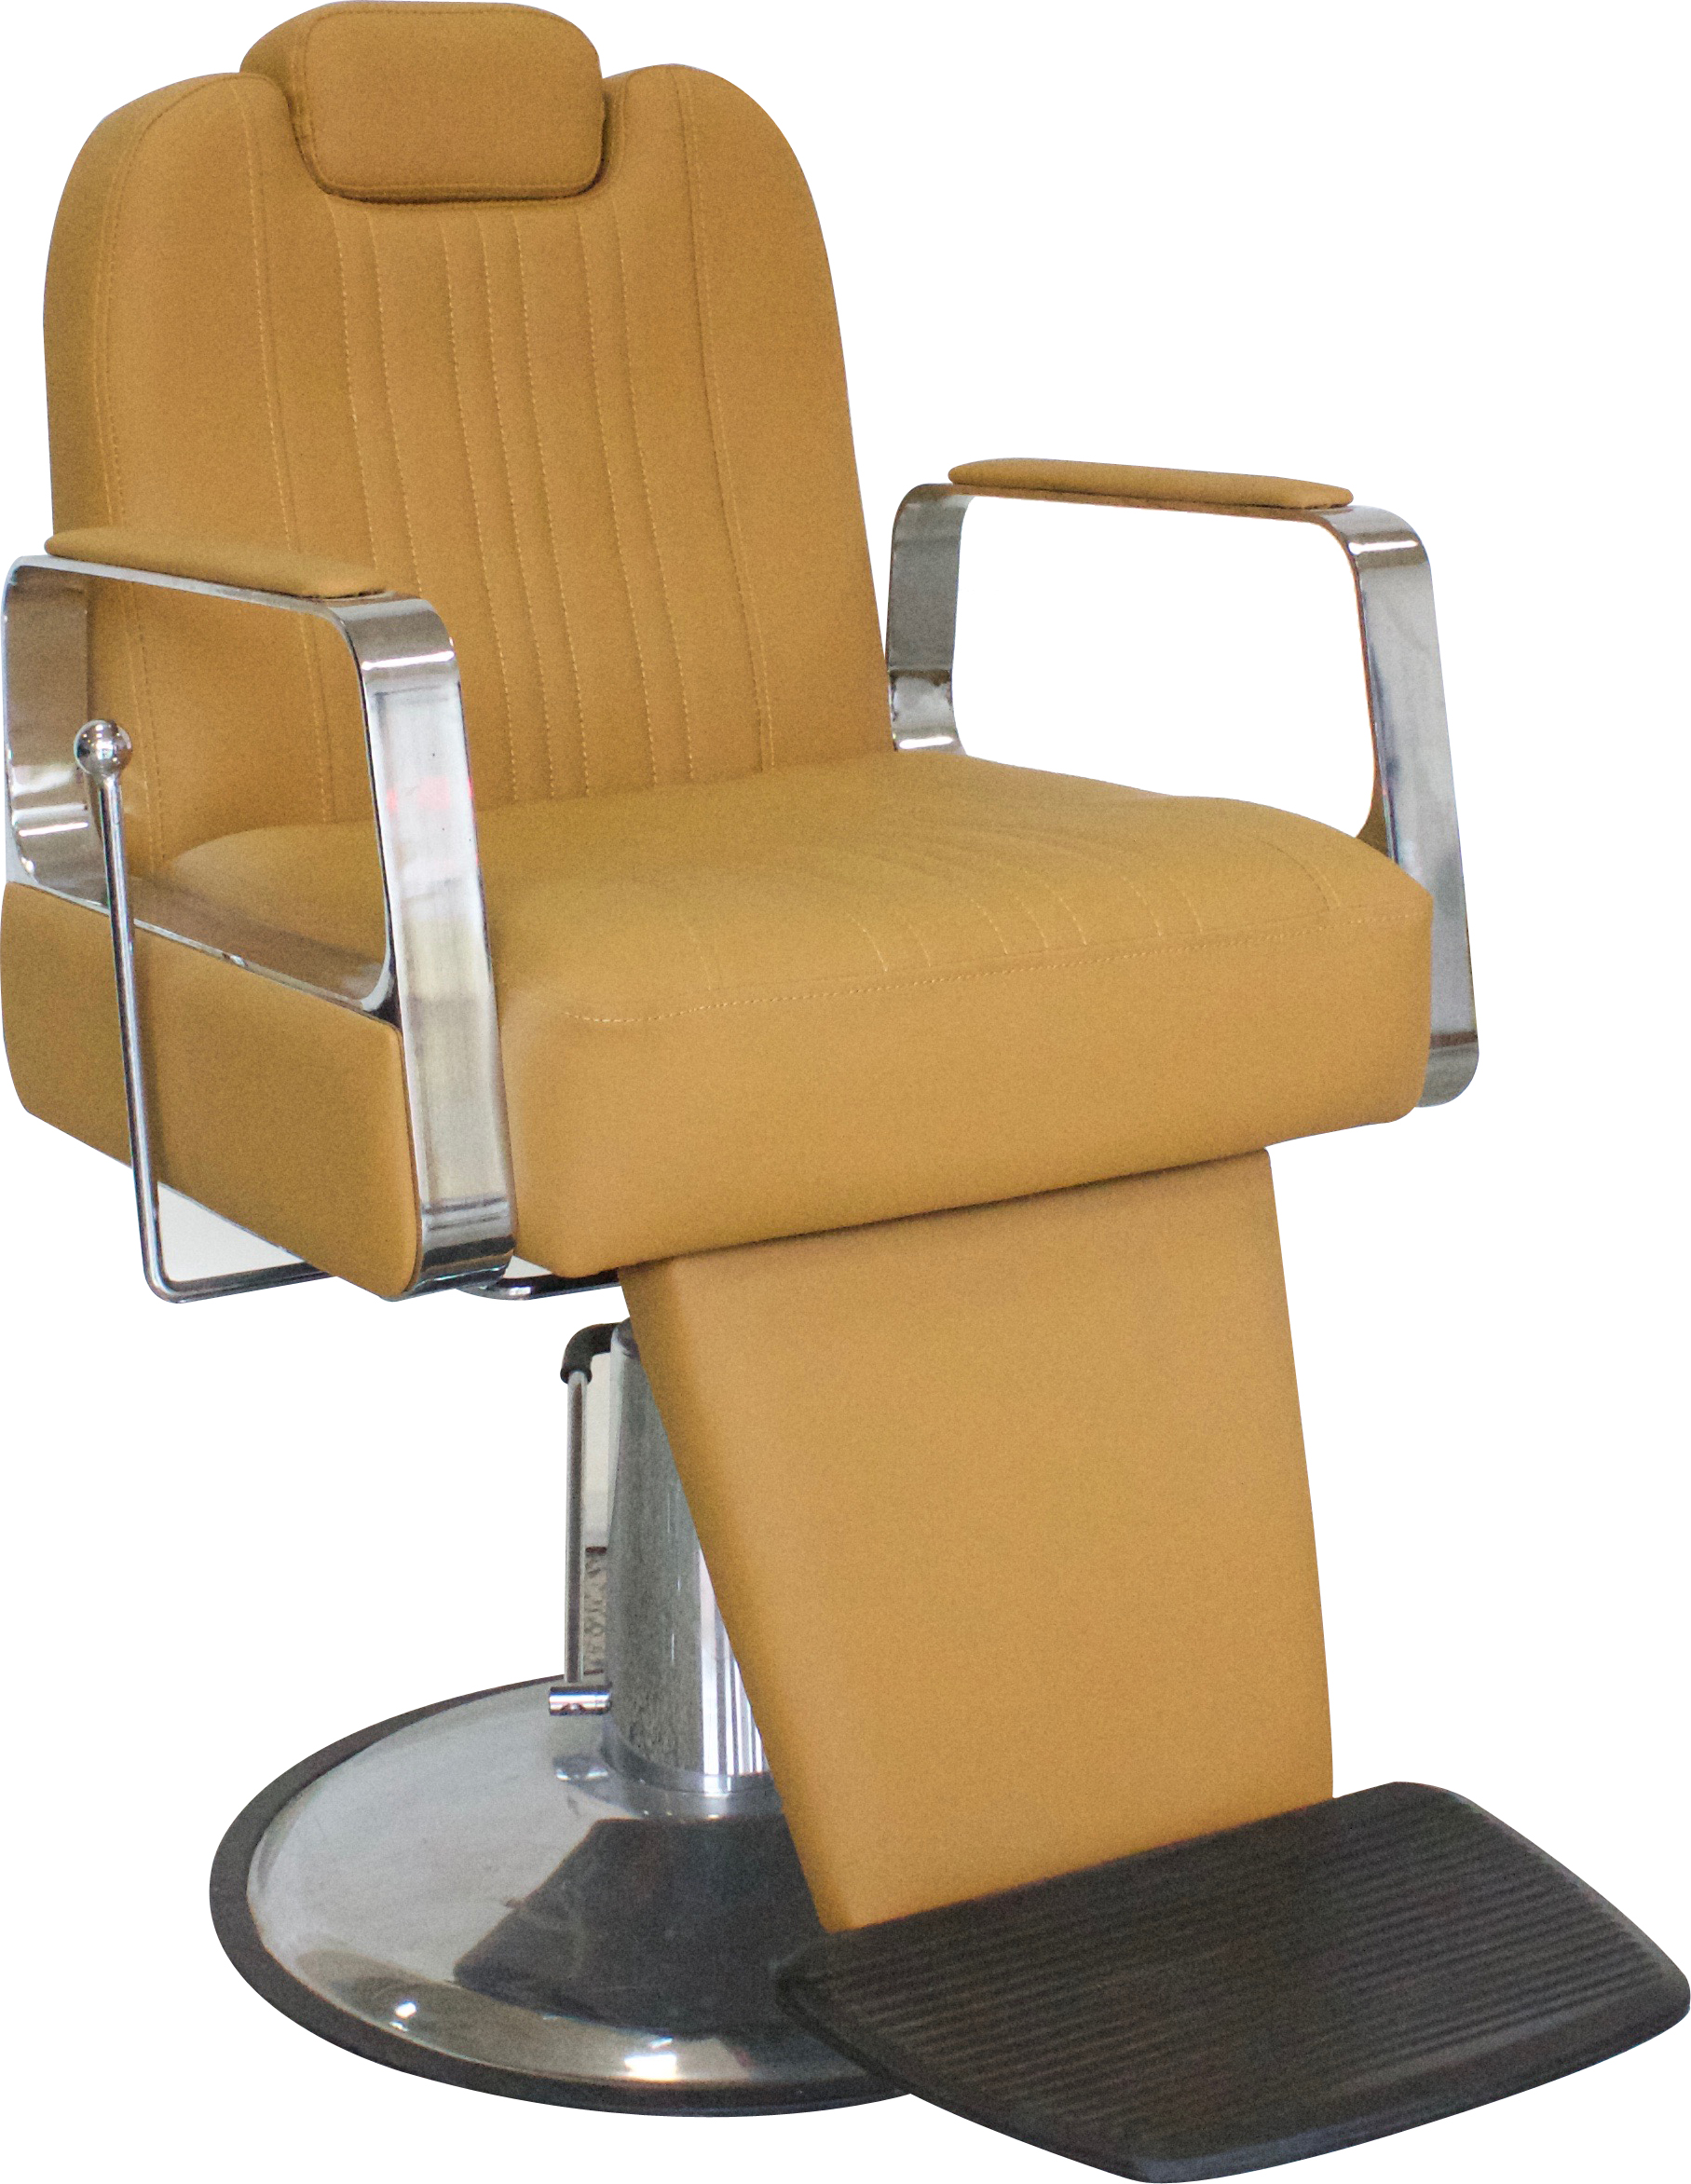 Titus Barber Chair With Headrest Black Salon Furniture